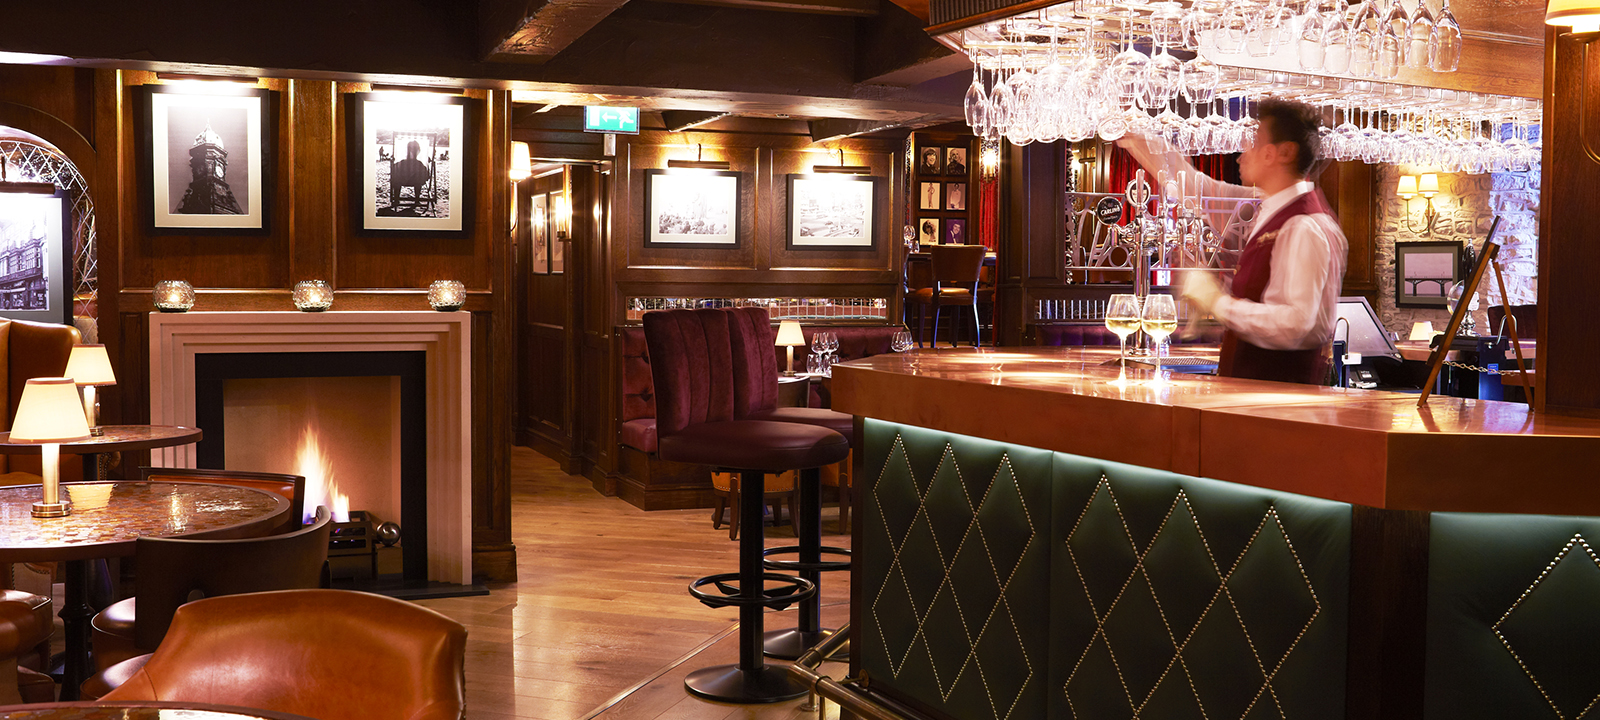 The Copper Horse - Seamer   One of the Finest Restaurants in ...